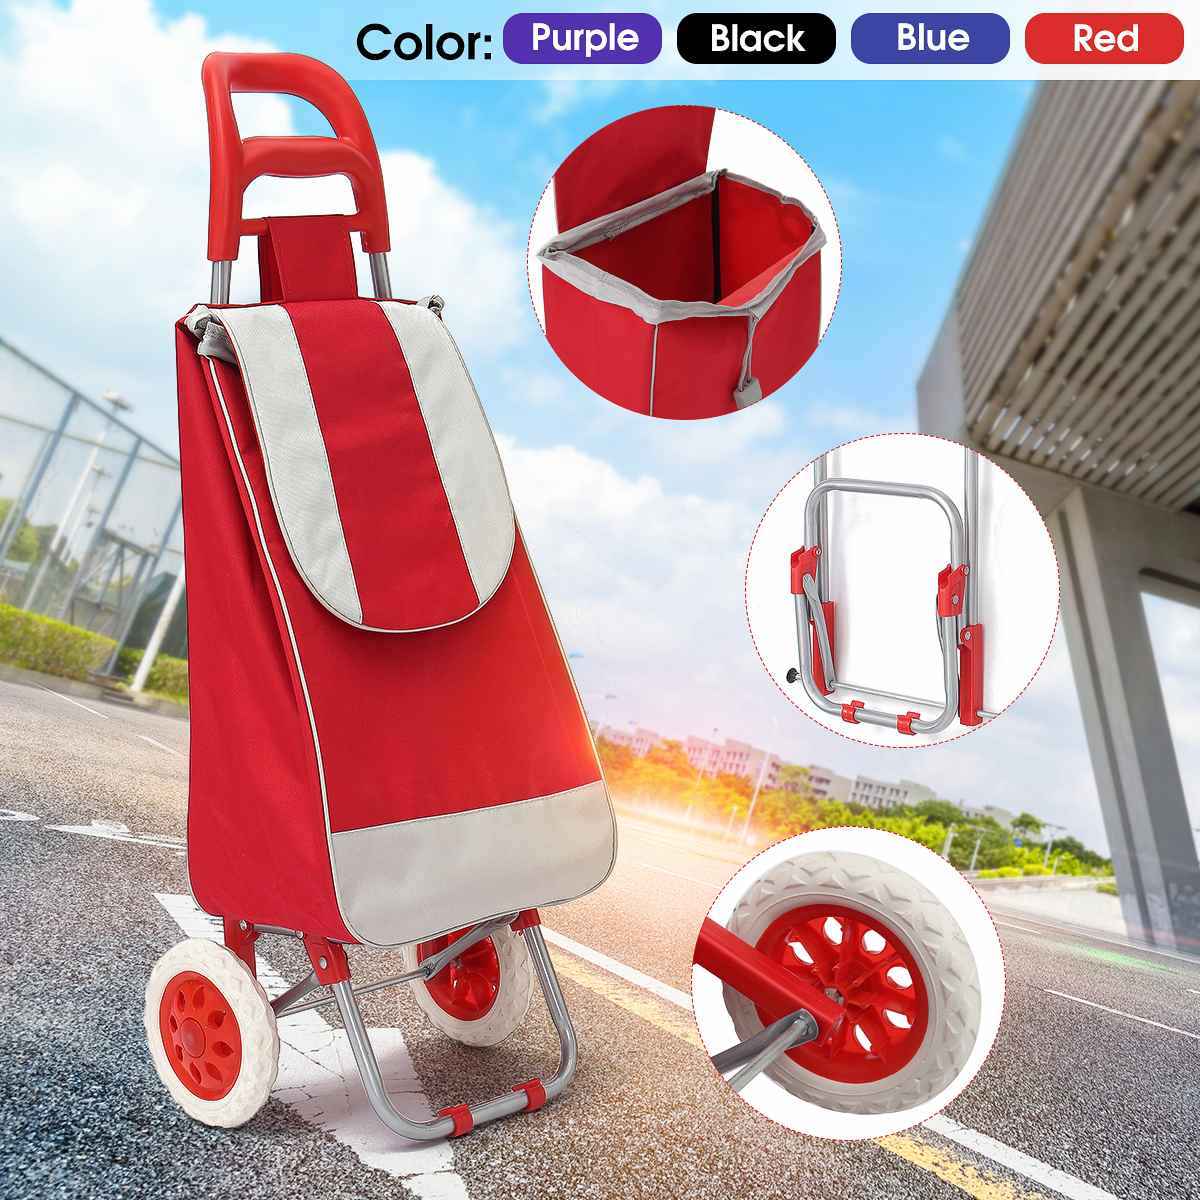 45L Foldable Shopping Trolley Bag On Wheels Push Tote Cart Carts Trolley Bag Basket Luggage Wheels Oxford Fabric Floding45L Foldable Shopping Trolley Bag On Wheels Push Tote Cart Carts Trolley Bag Basket Luggage Wheels Oxford Fabric Floding